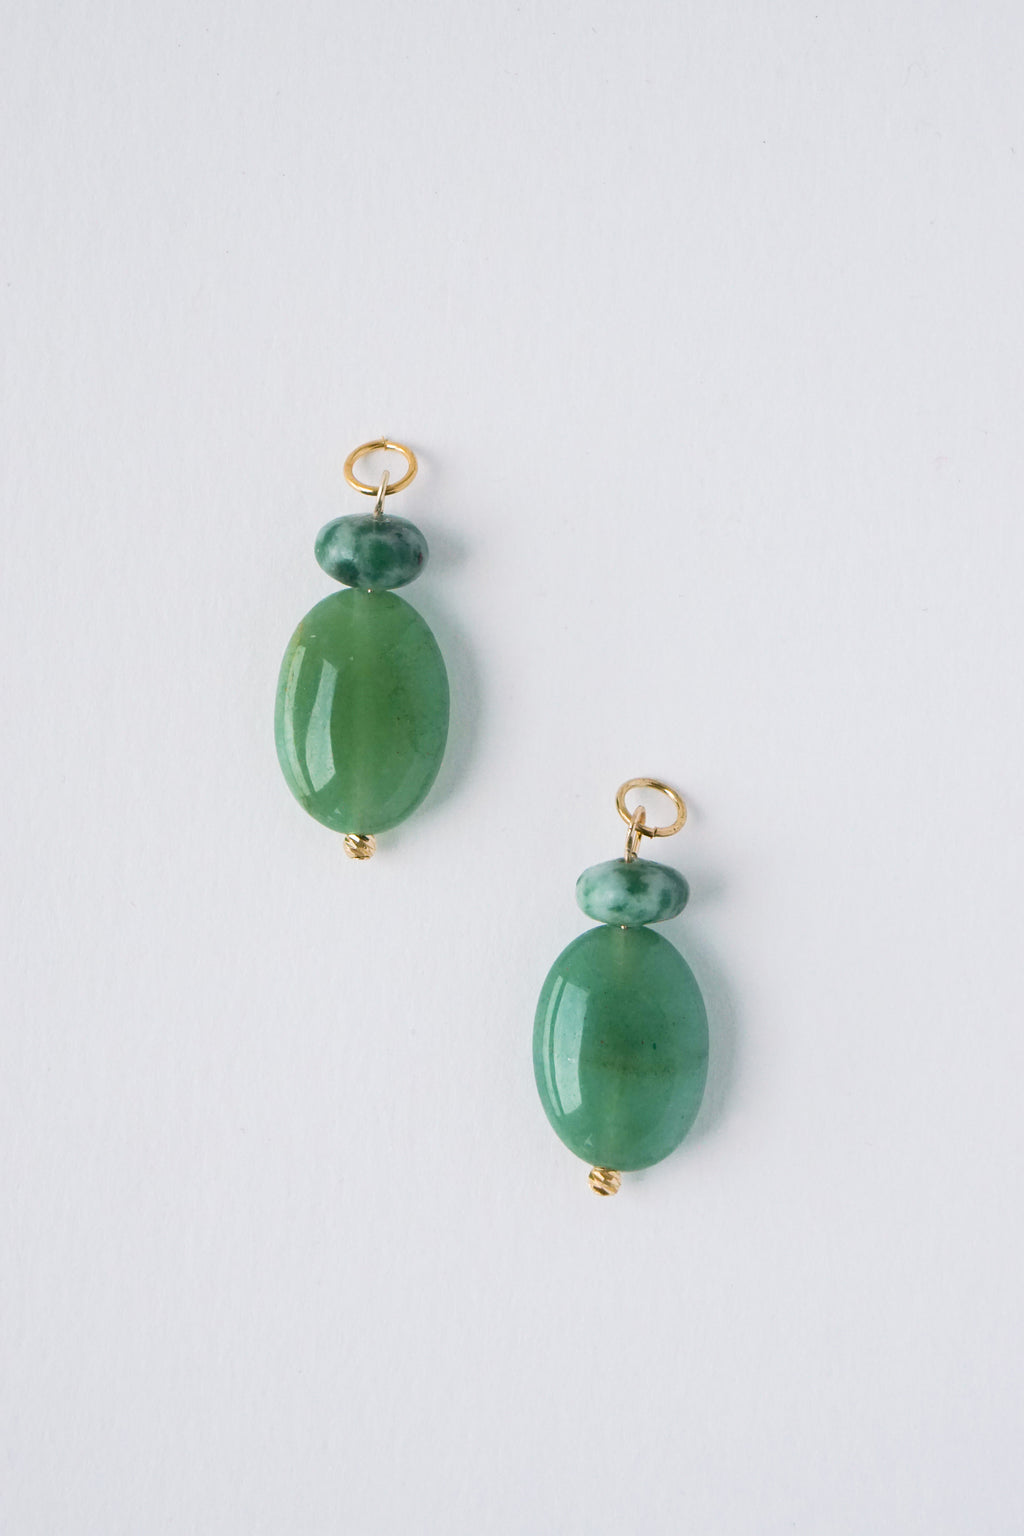 Sequoia Charms - Green Aventurine x African Jade